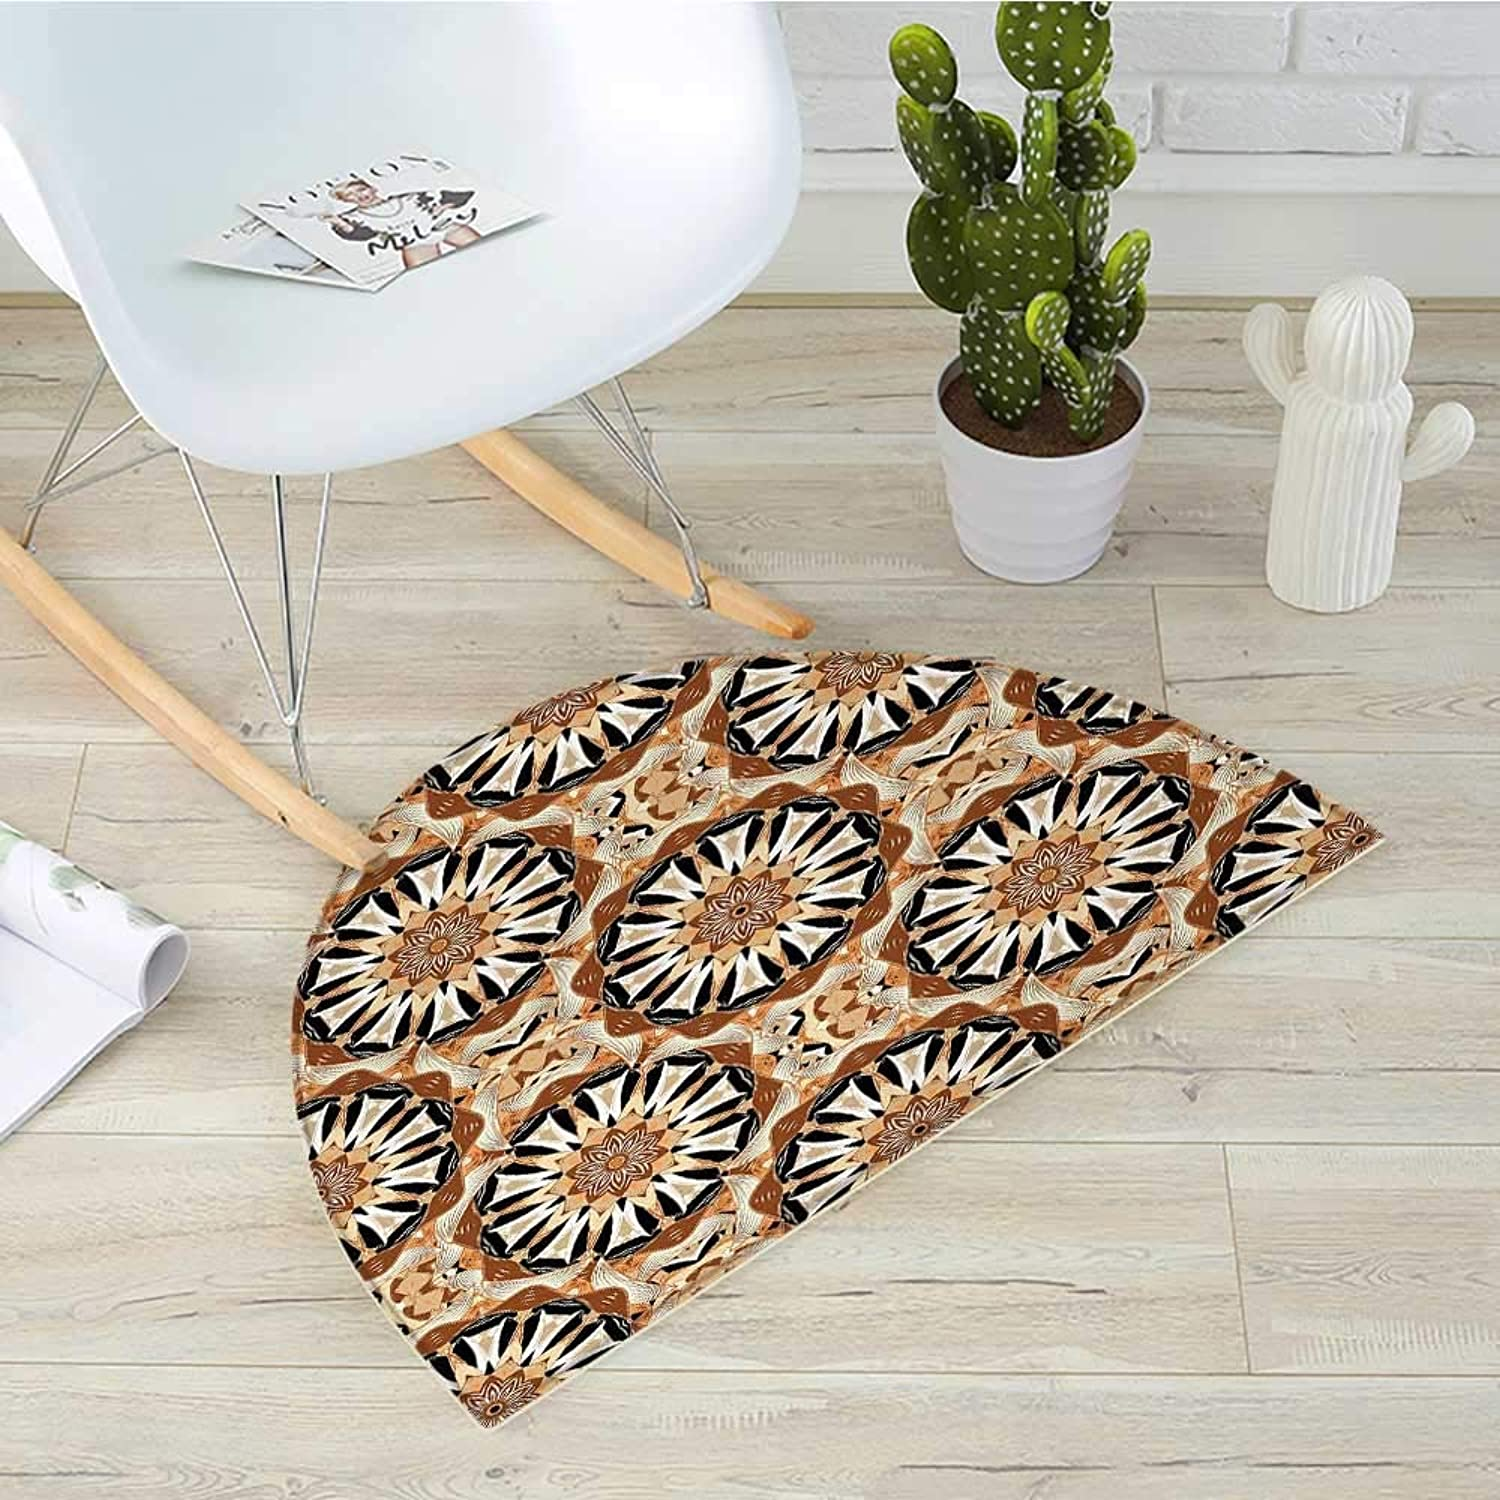 Tan and Brown Half Round Door mats Oriental Style Figure with Traditional Elements Mandala Inspired Floral Bathroom Mat H 51.1  xD 76.7  Tan Brown Black